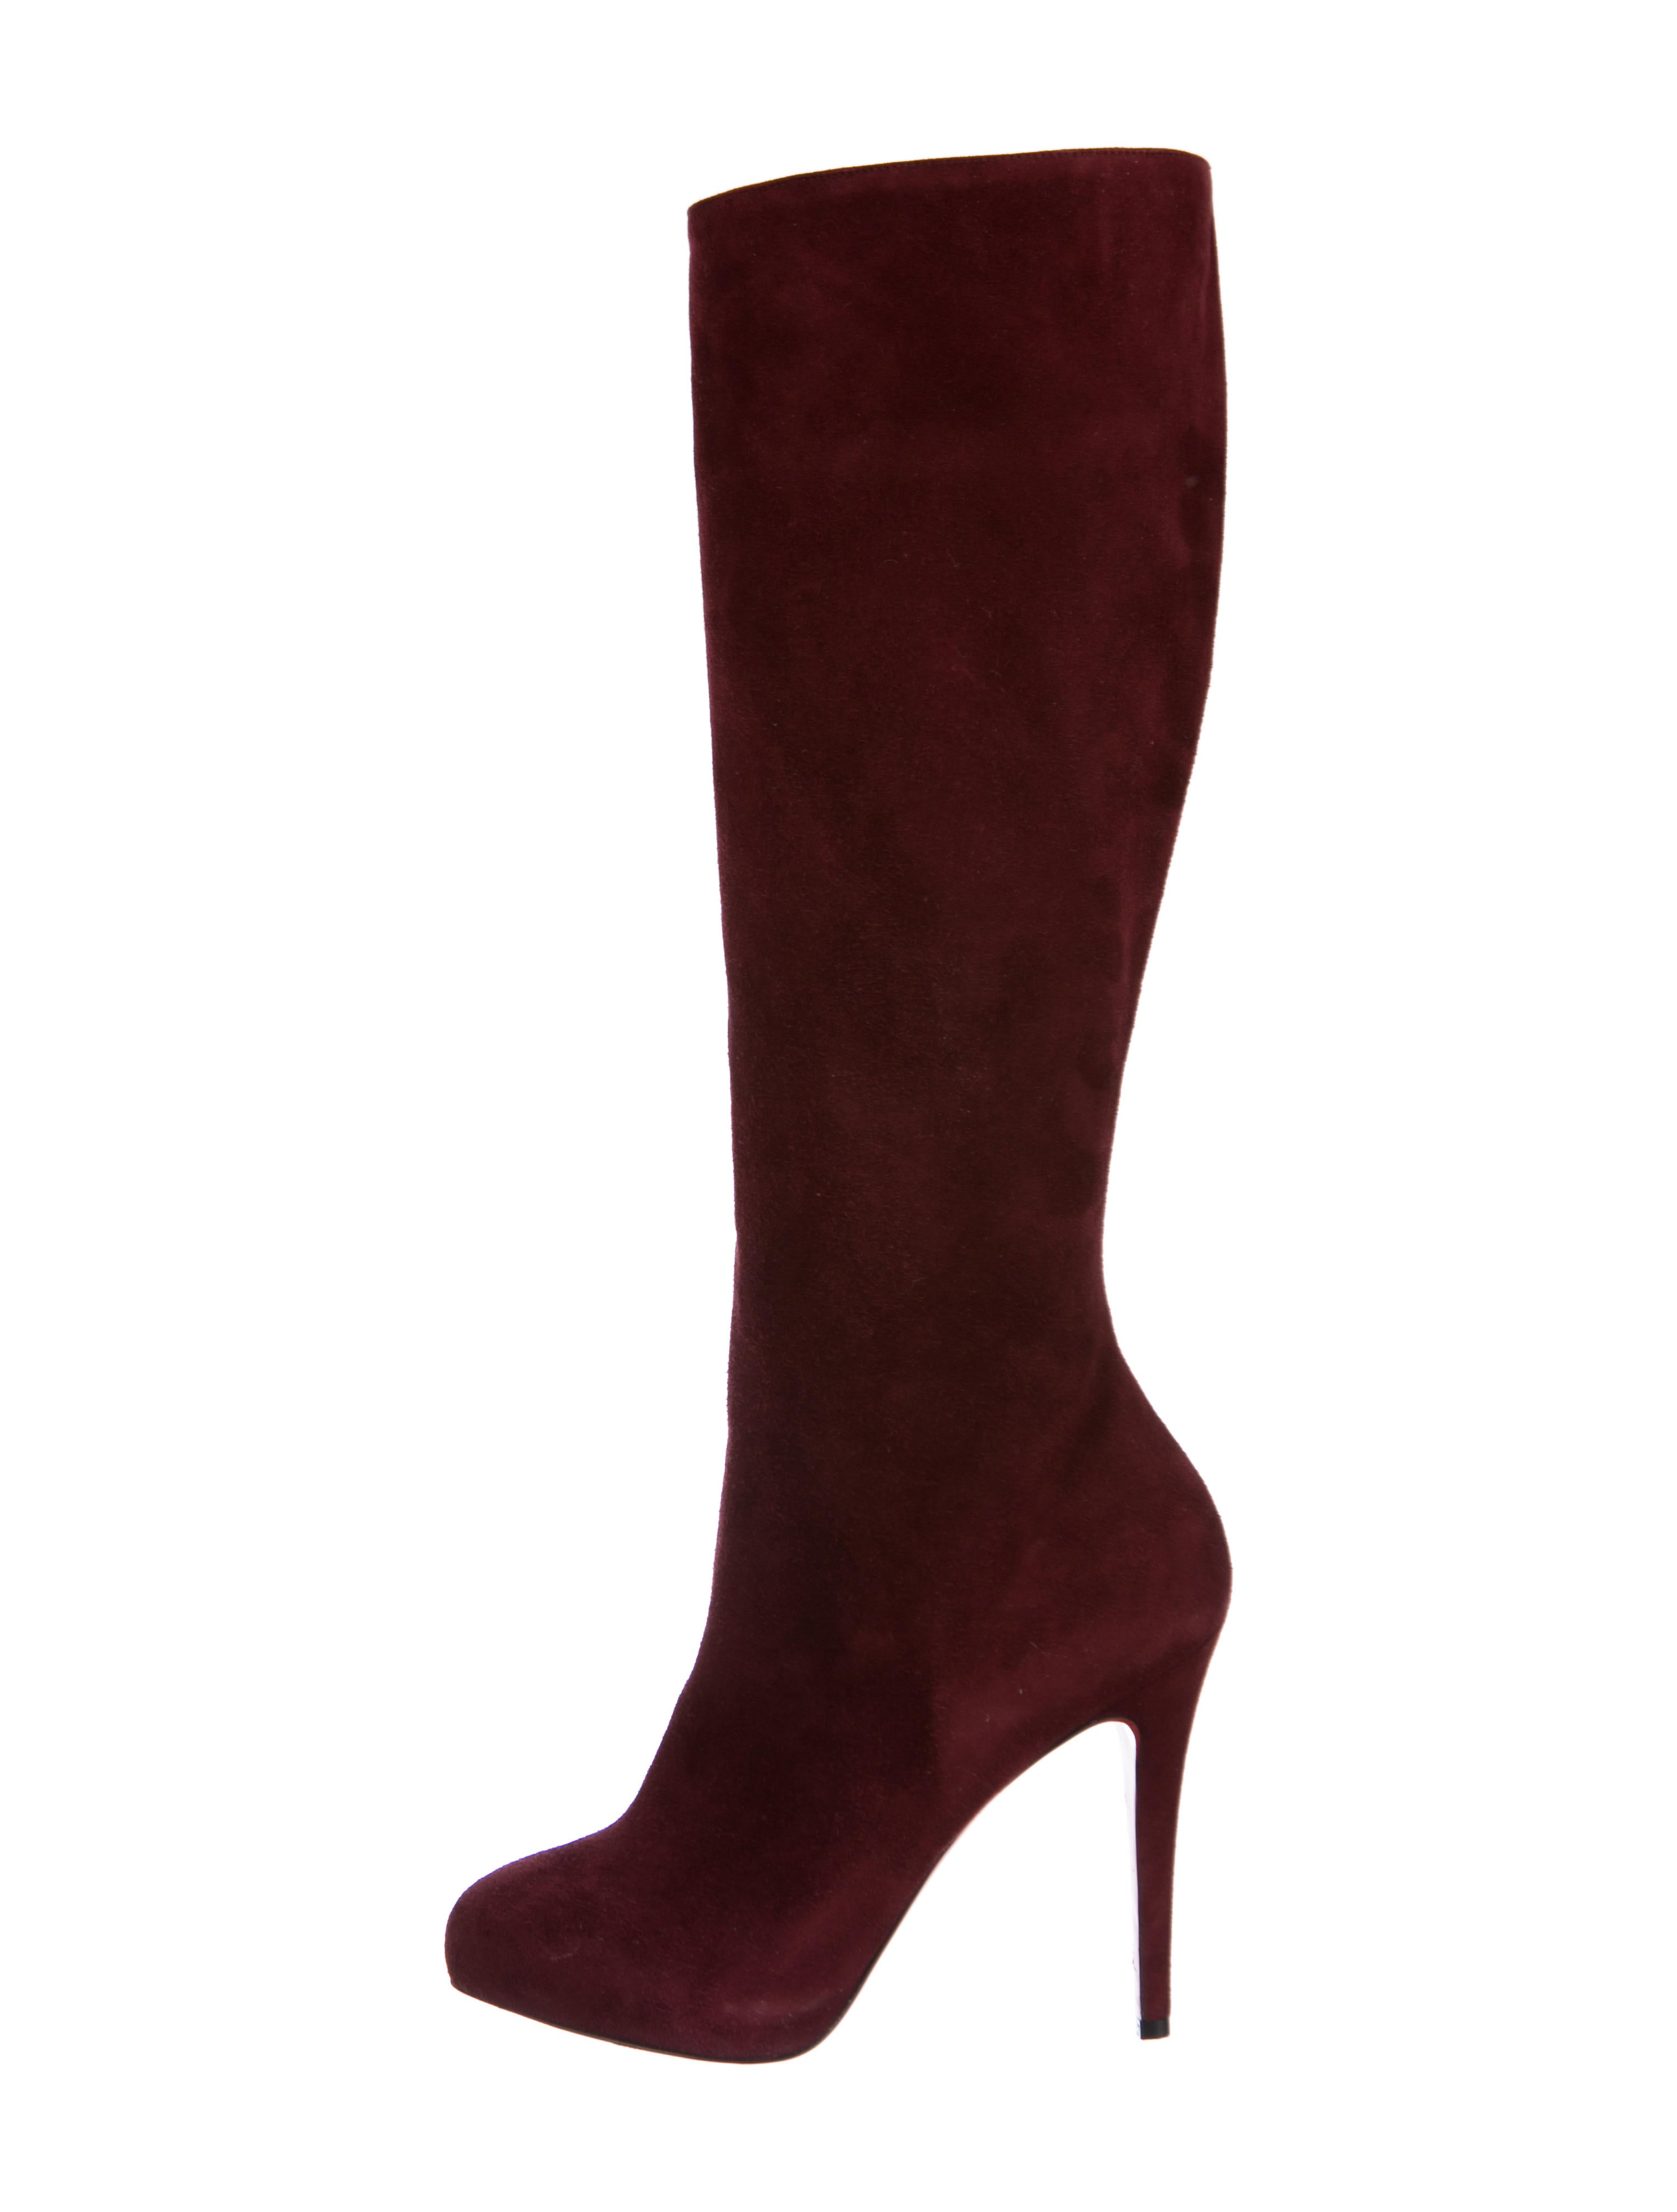 save off 4156b 0b77c Christian Louboutin Botalili 120 Suede Boots